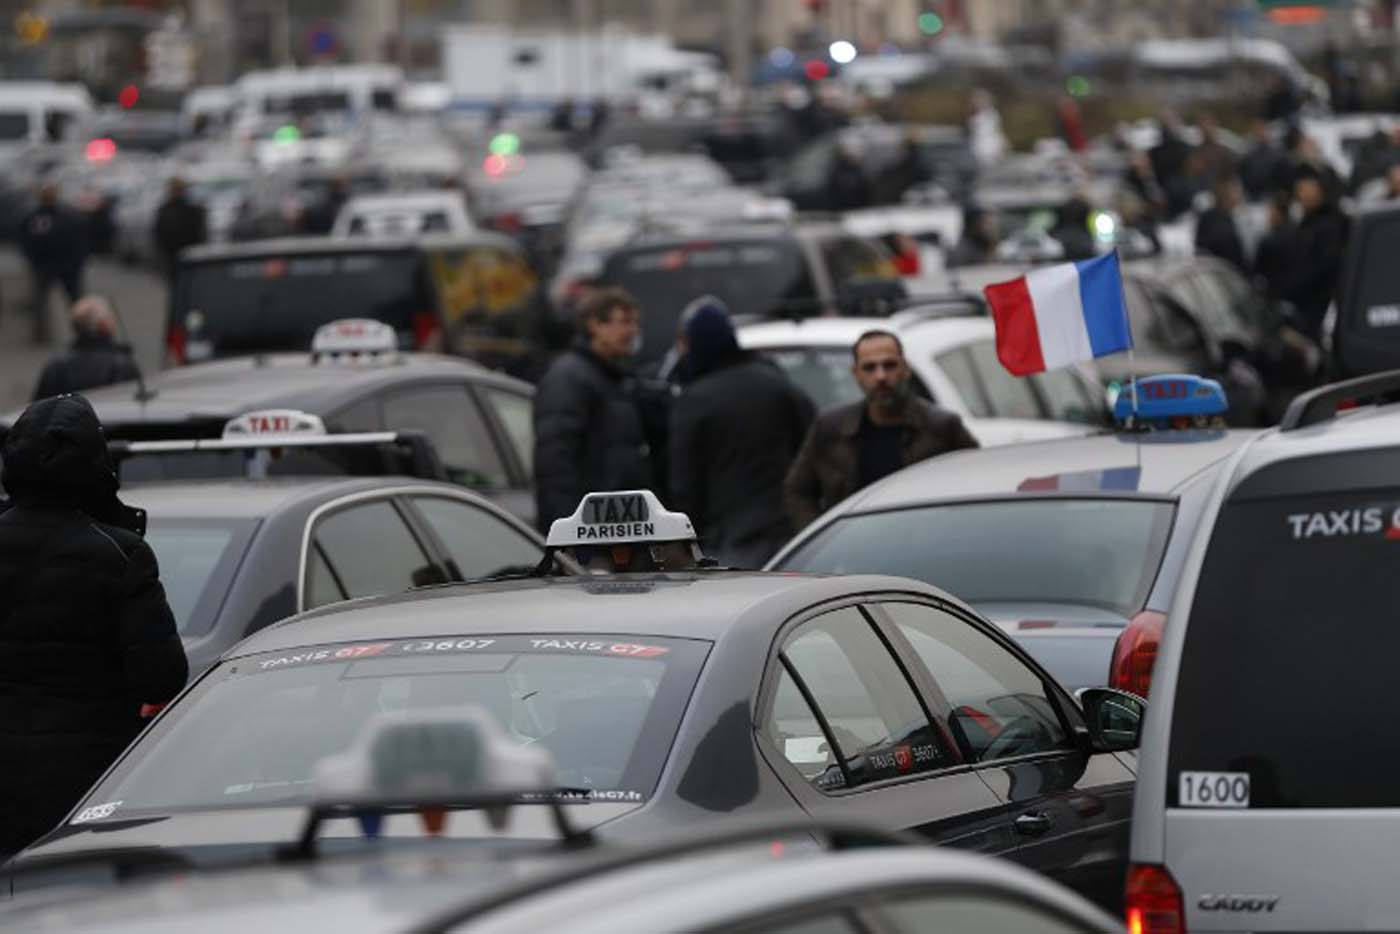 Taxi drivers block the traffic during a demonstration against the VTC (transport vehicle with chauffeur) on January 26, 2016 at porte Maillot in Paris. AFP PHOTO / THOMAS SAMSON / AFP / THOMAS SAMSON